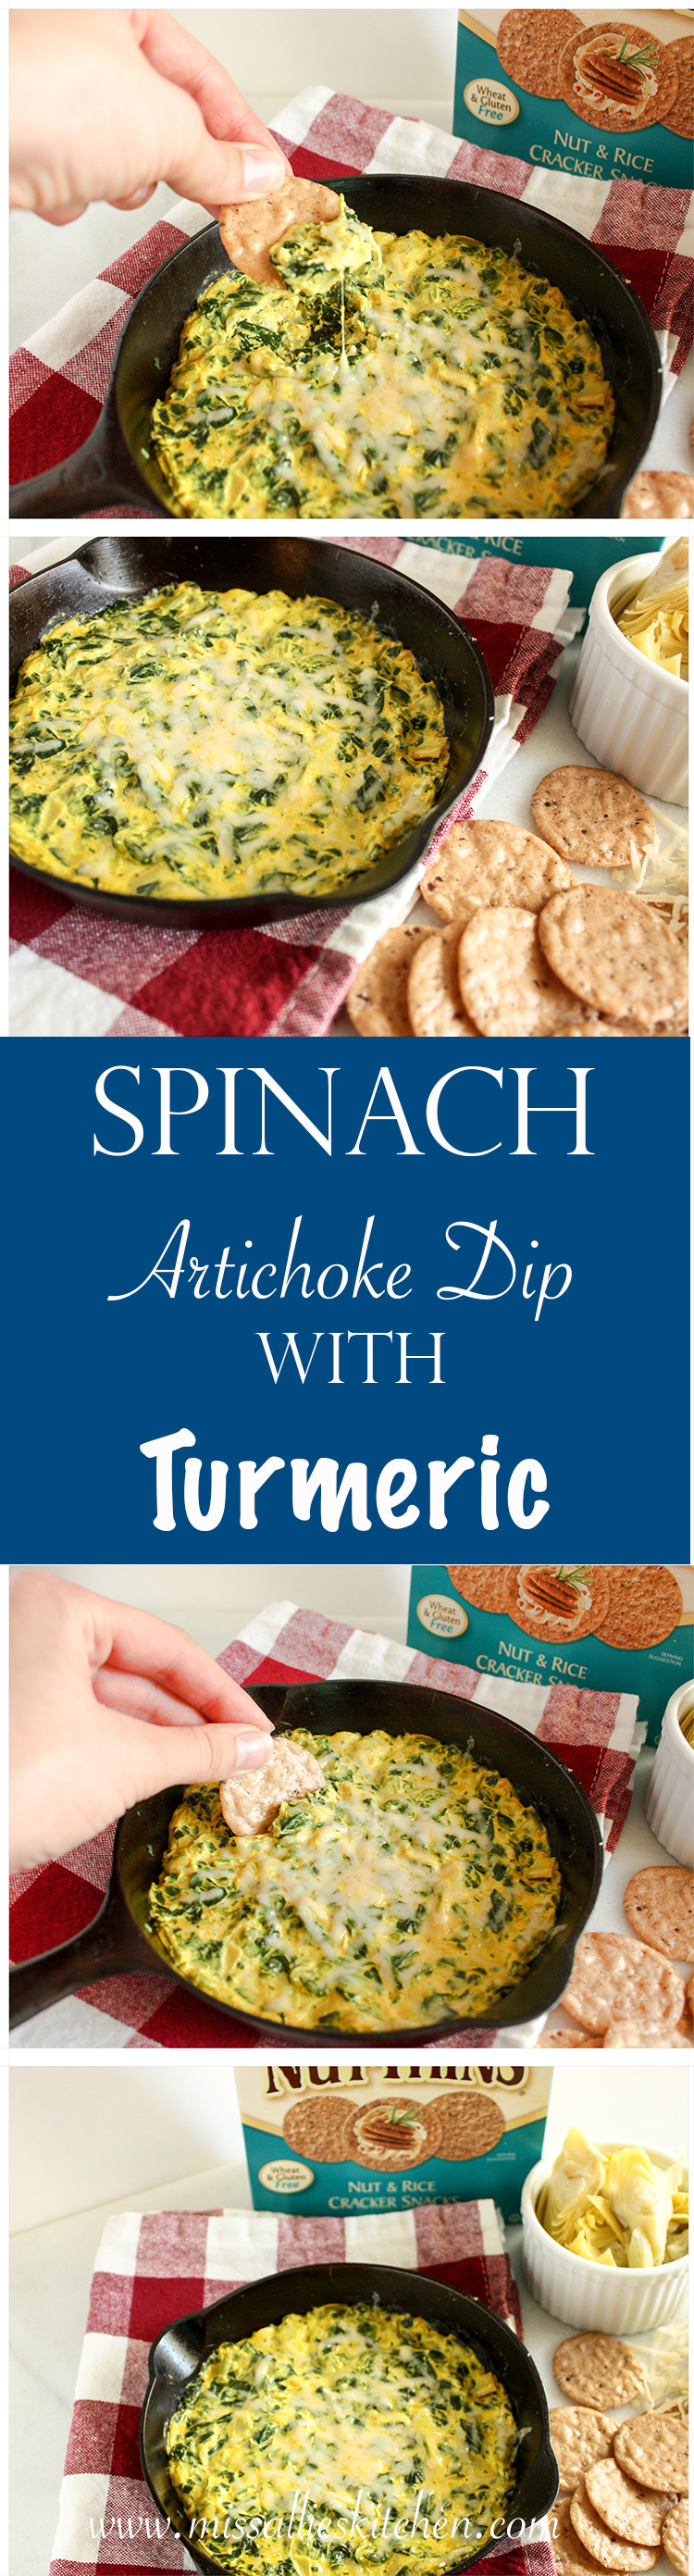 Spinach Artichoke Dip with Turmeric -Miss Allie's Kitchen